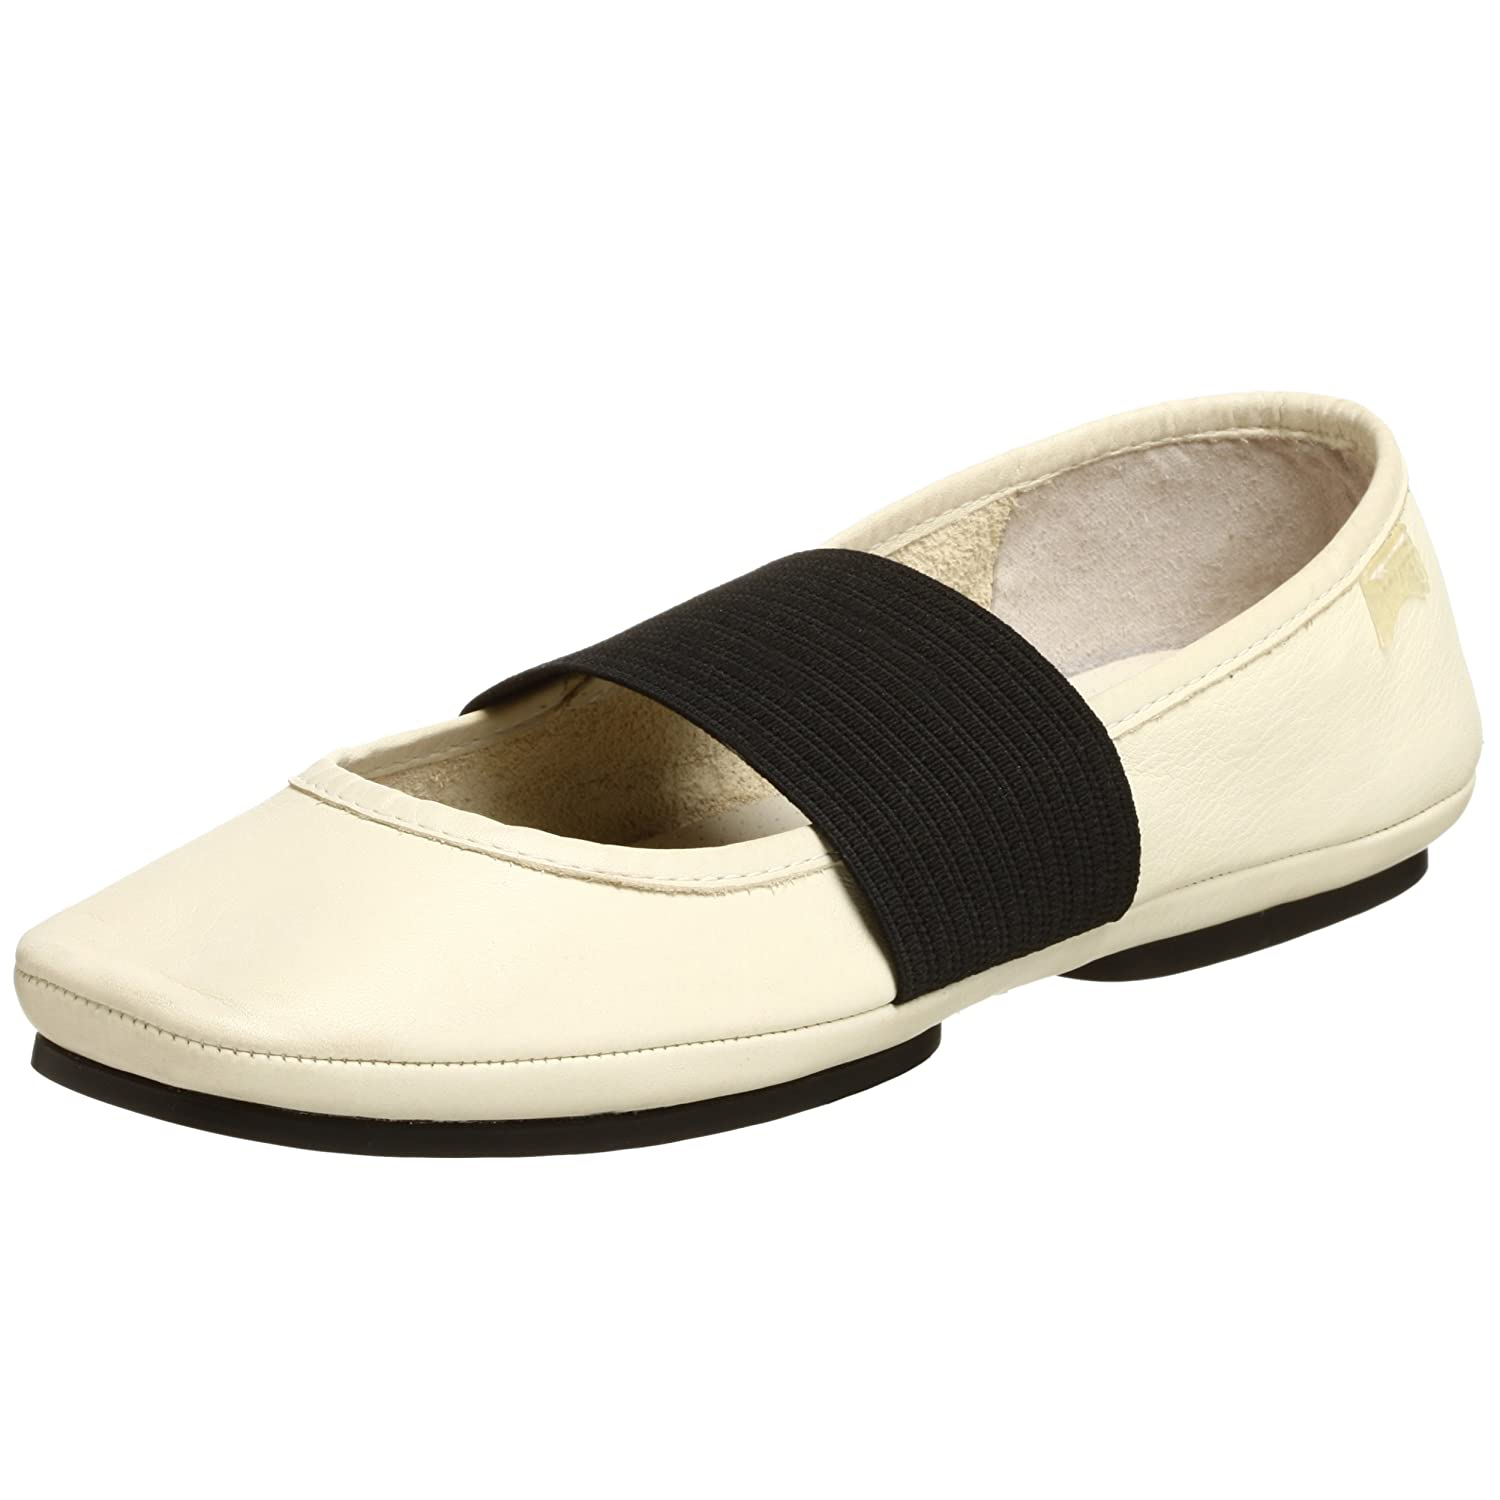 Camper Right Mary Jane Flat Free Overnight Shipping Return Shipping Endless com from endless.com